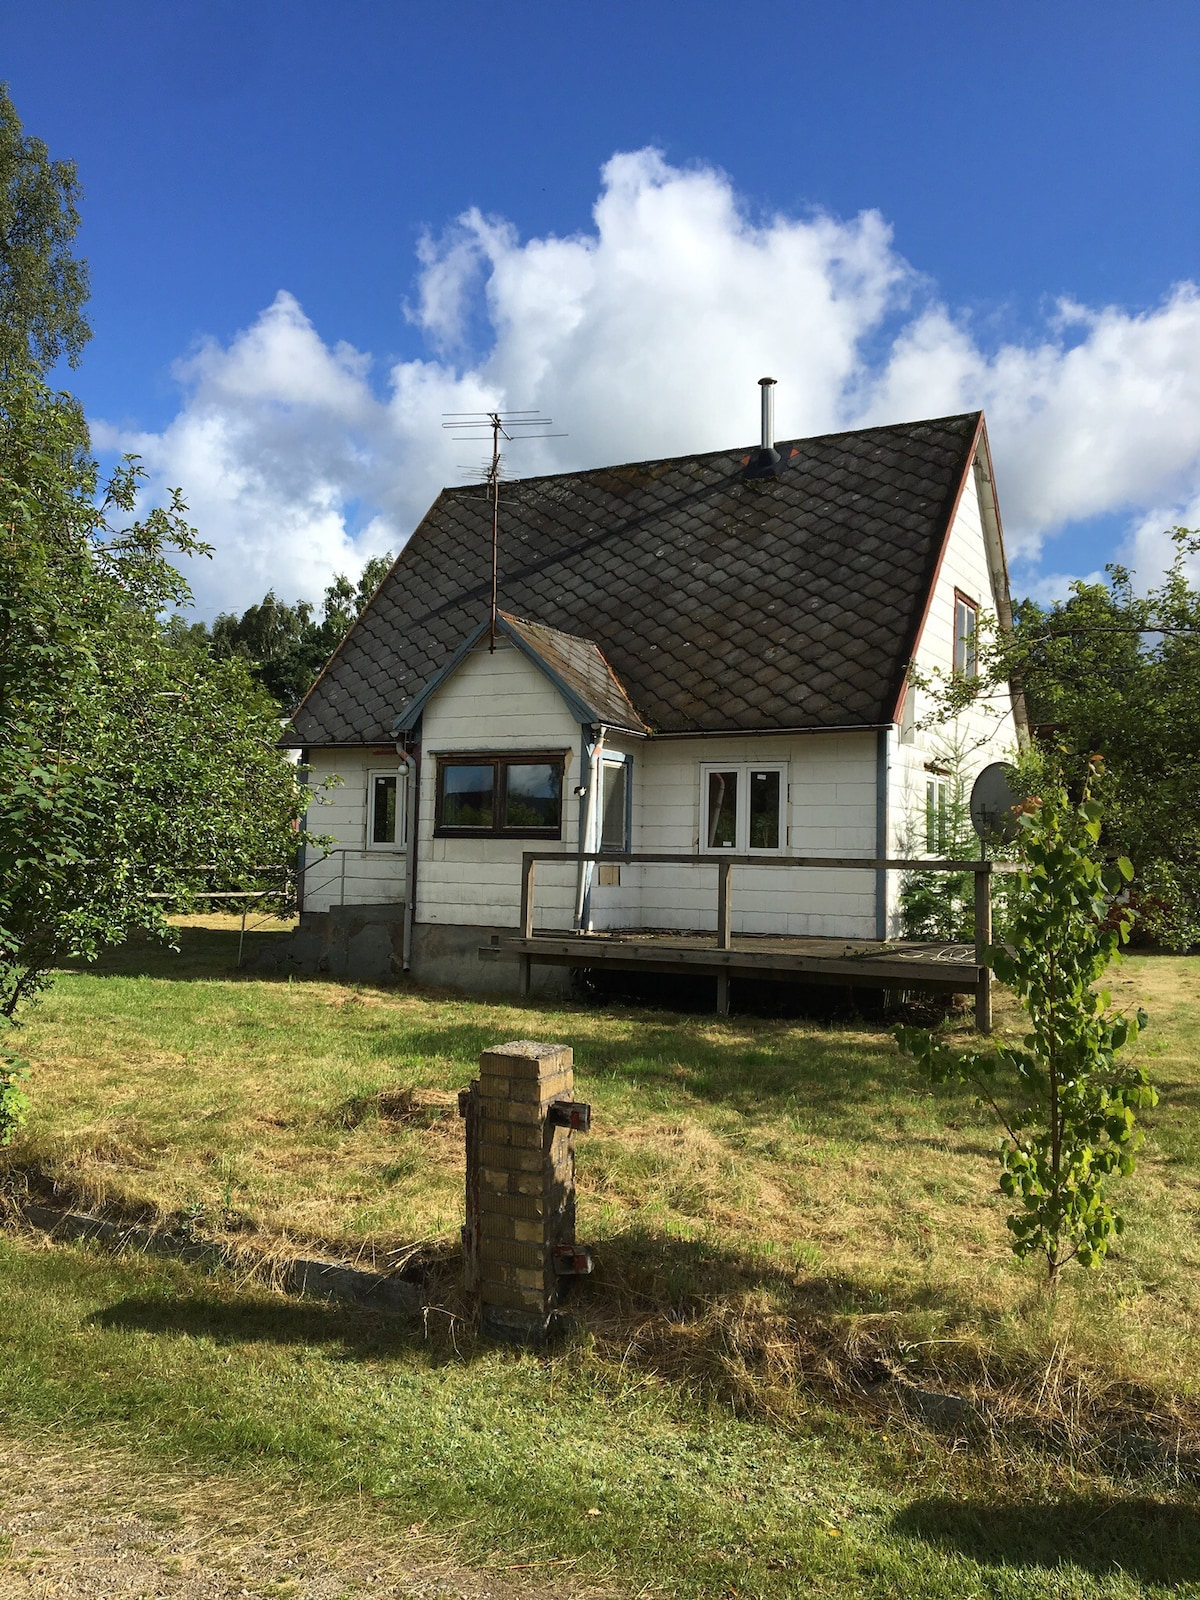 Perstorps Golfklubb - Golf Course & Country Club - Perstorp